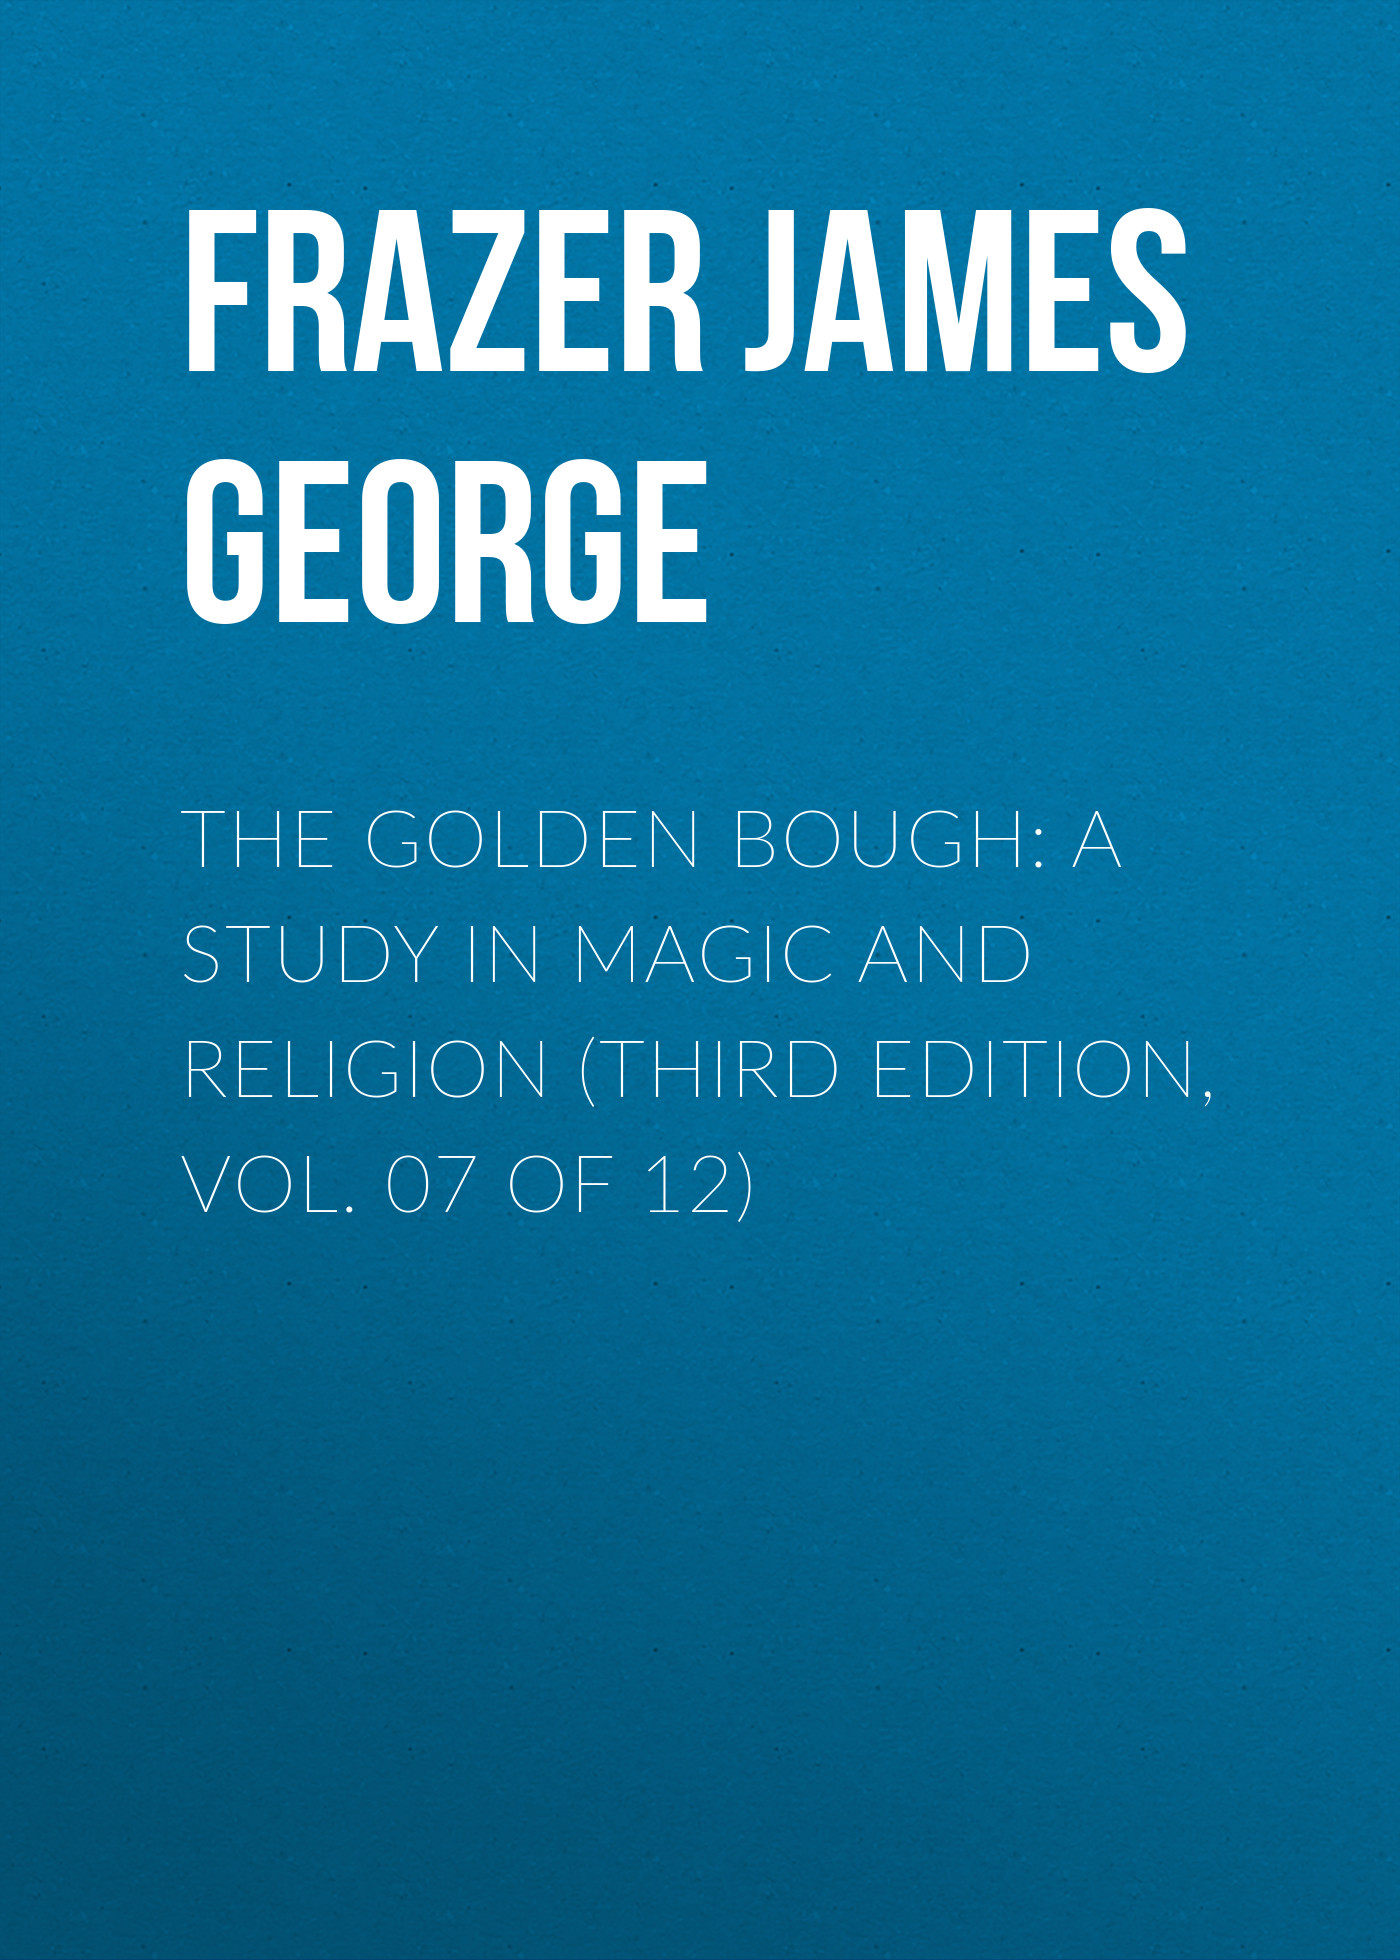 Frazer James George The Golden Bough: A Study in Magic and Religion (Third Edition, Vol. 07 of 12) frazer james george the belief in immortality and the worship of the dead volume 2 of 3